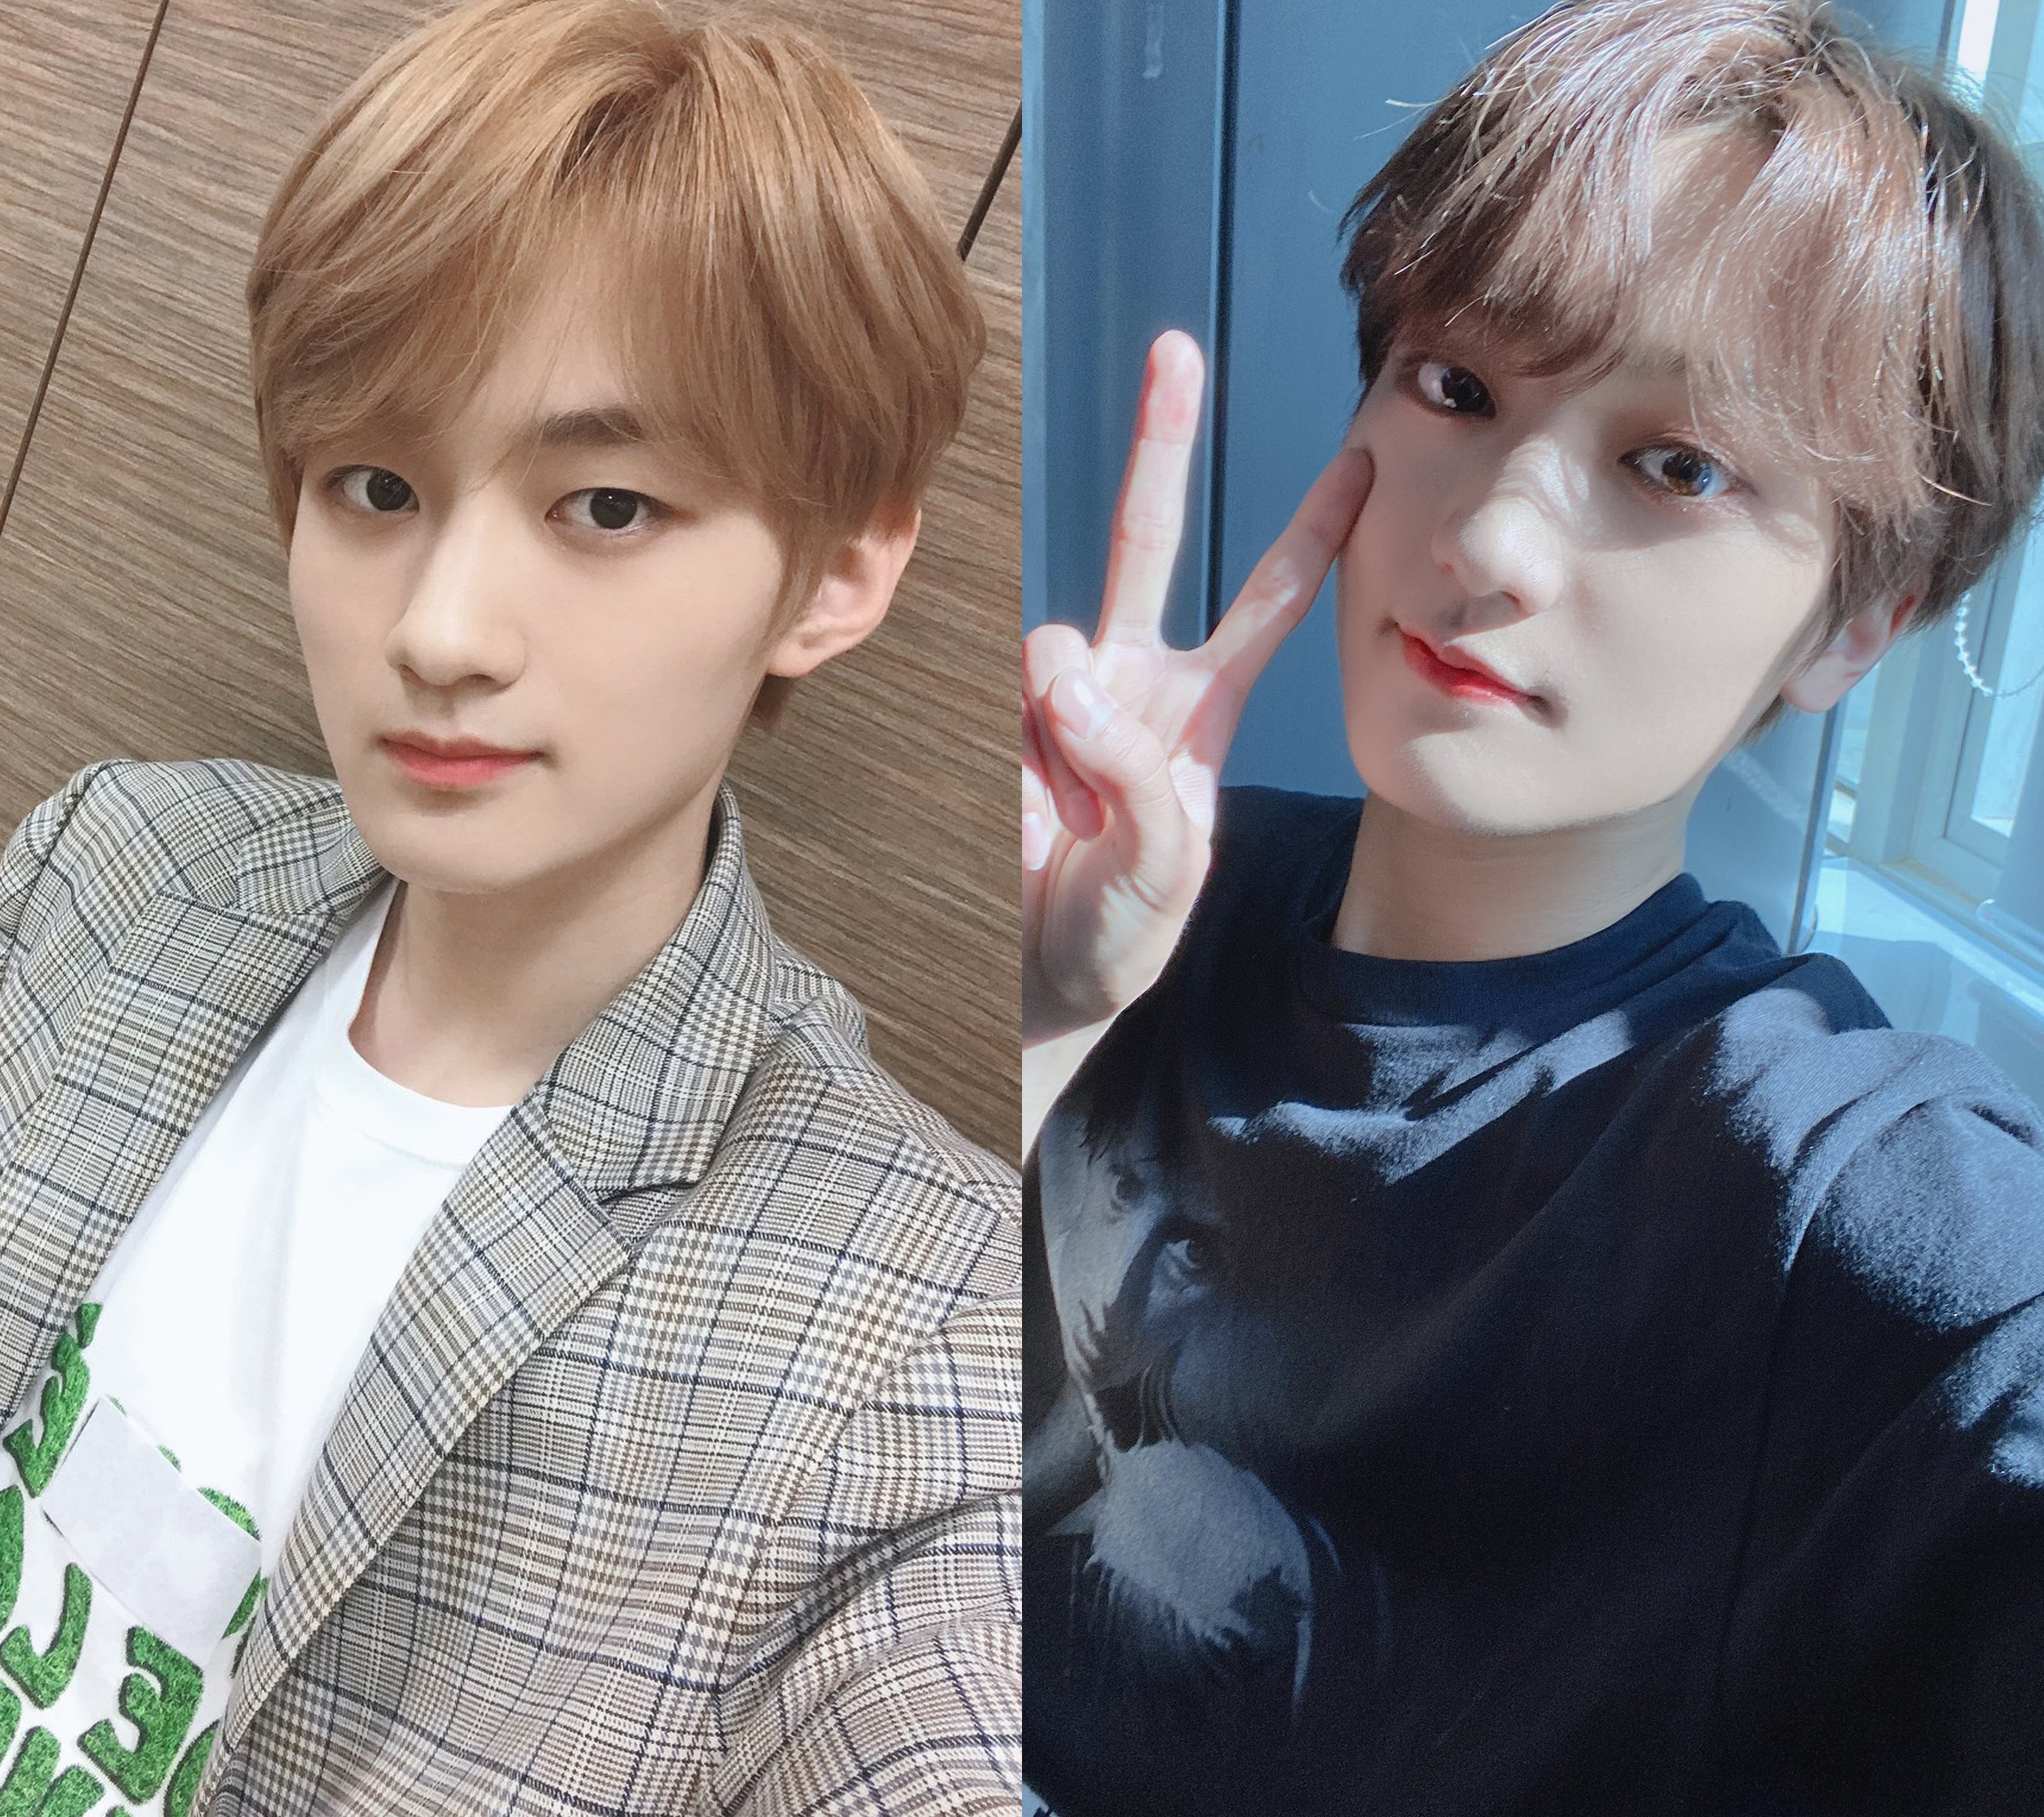 1 verivery yongseung cravity taeyoung blond hair lookalike